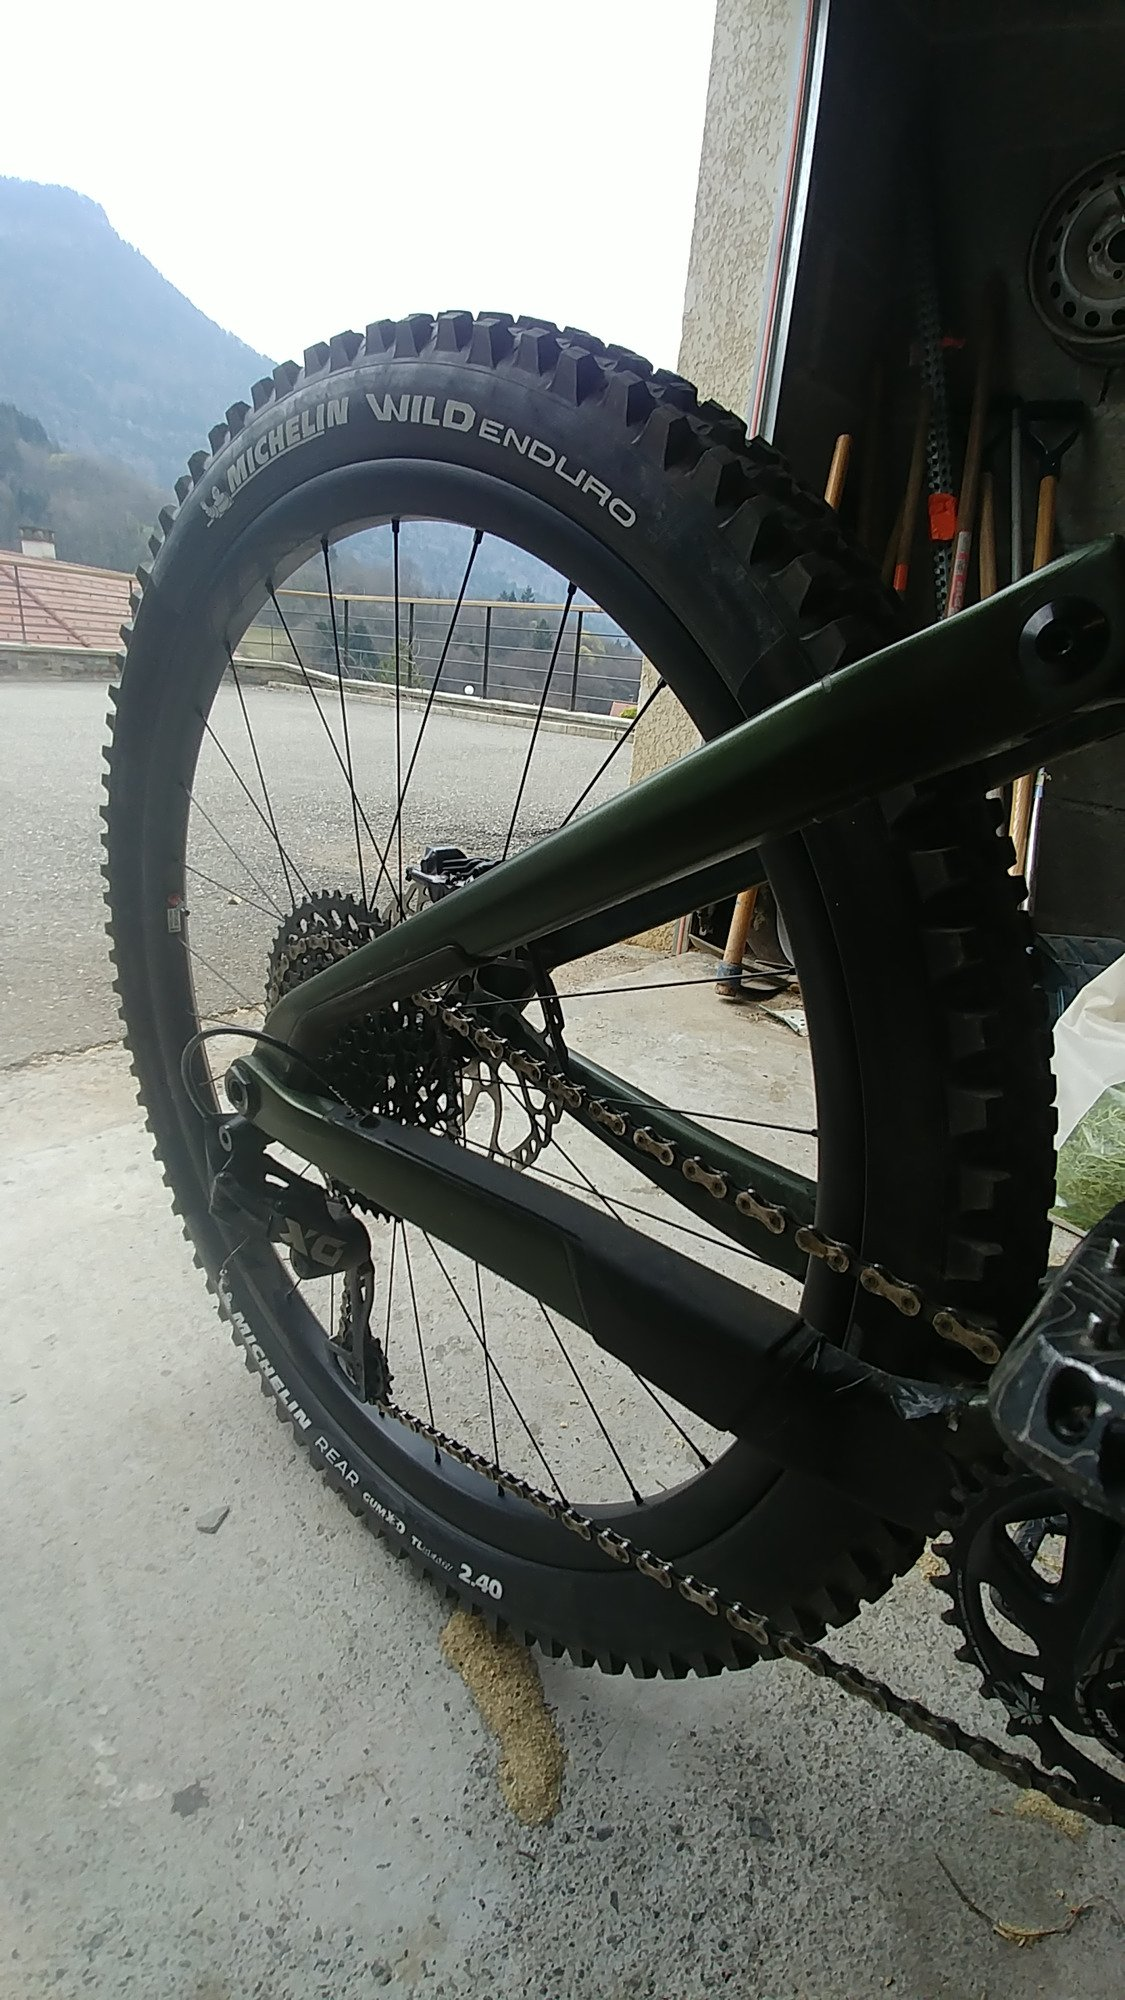 MICHELIN wild enduro rear